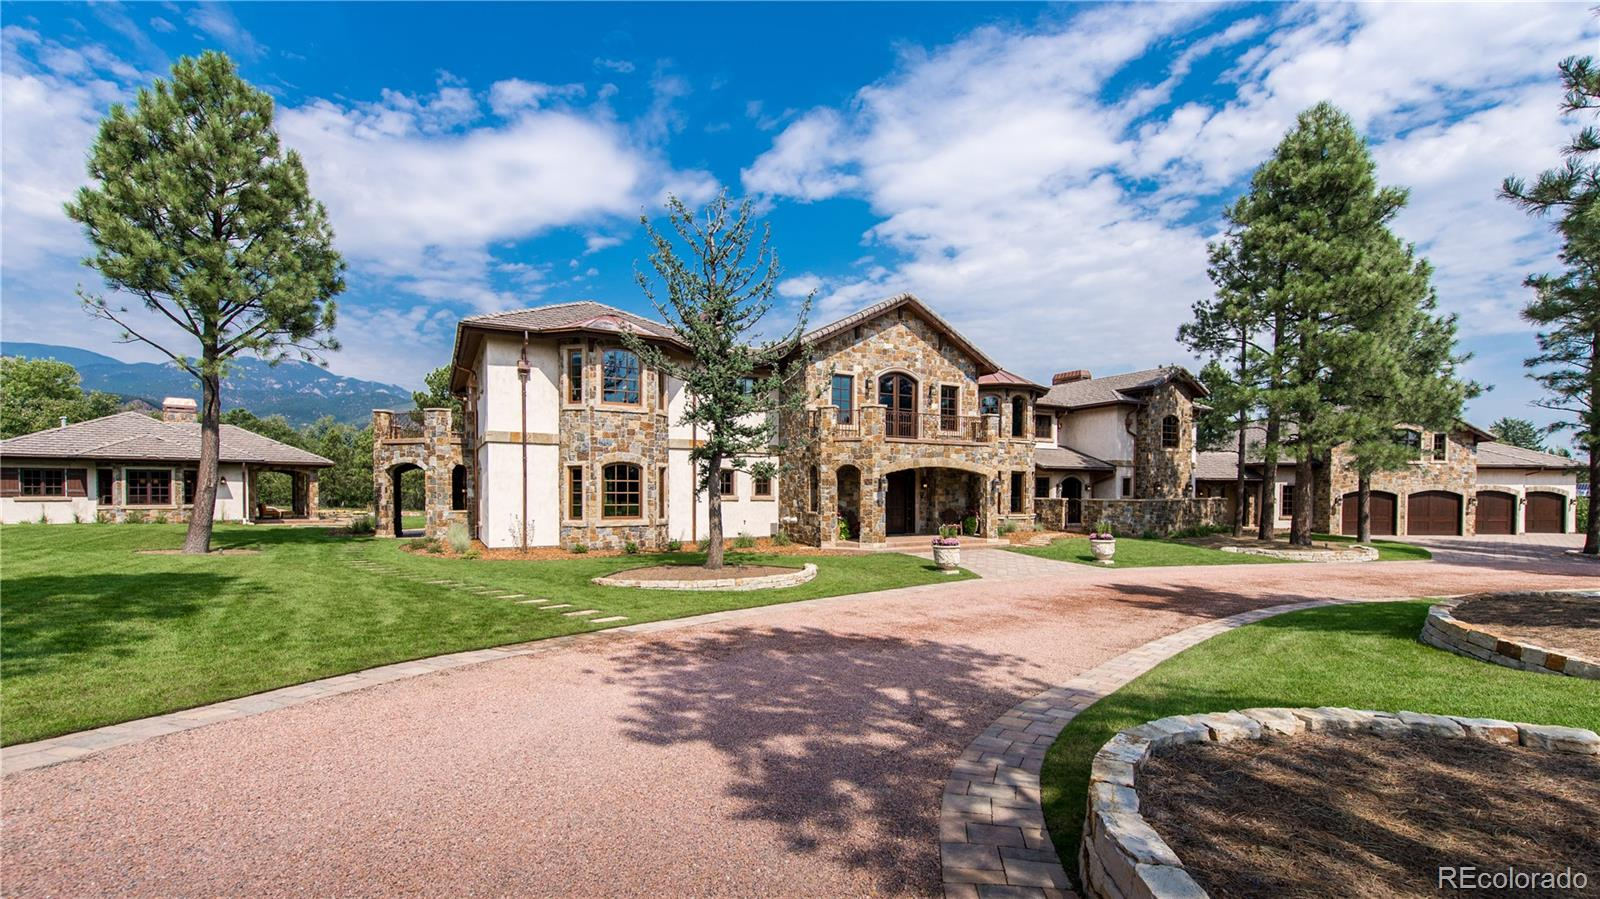 Welcome to this gorgeous family compound!  The most spectacular home in Colorado Springs!  Located within walking distance to the famous 5 Star Broadmoor Hotel, this masterpiece is adjacent to a 20 acre private park.  As you walk through this gorgeous home the attention to detail will astound you. This custom home was lovingly built with materials from around the world:  African Mahogany Doors, Italian travertine flooring, Hand scraped pecan floors, Douglas Fir Beams from Oregon, Hand Carved Travertine Fireplace surrounds from Mexico, Italian Marble flooring, Stone from Montana and Colorado.   From the floor to ceiling windows that greet you when you arrive to the outdoor patios and decks that afford you the majestic mountain views.  The home features 2 story great room, formal dining, cozy family room with access to the outdoor covered patio, a expansive library/study combination with built in's for your treasures and plenty of room for a multi-person office.  5 bedrooms in the main house, fully finished walkout complete with family room, game room, exercise room, bedroom, spa.  The wine cellar will hold your extensive collection with a tasting area you won't want to leave. An above garage apartment/studio is perfect for live in help or additional family member.  The separate guest house provides complete privacy for extended family or guests.  Broadmoor Golf membership available.